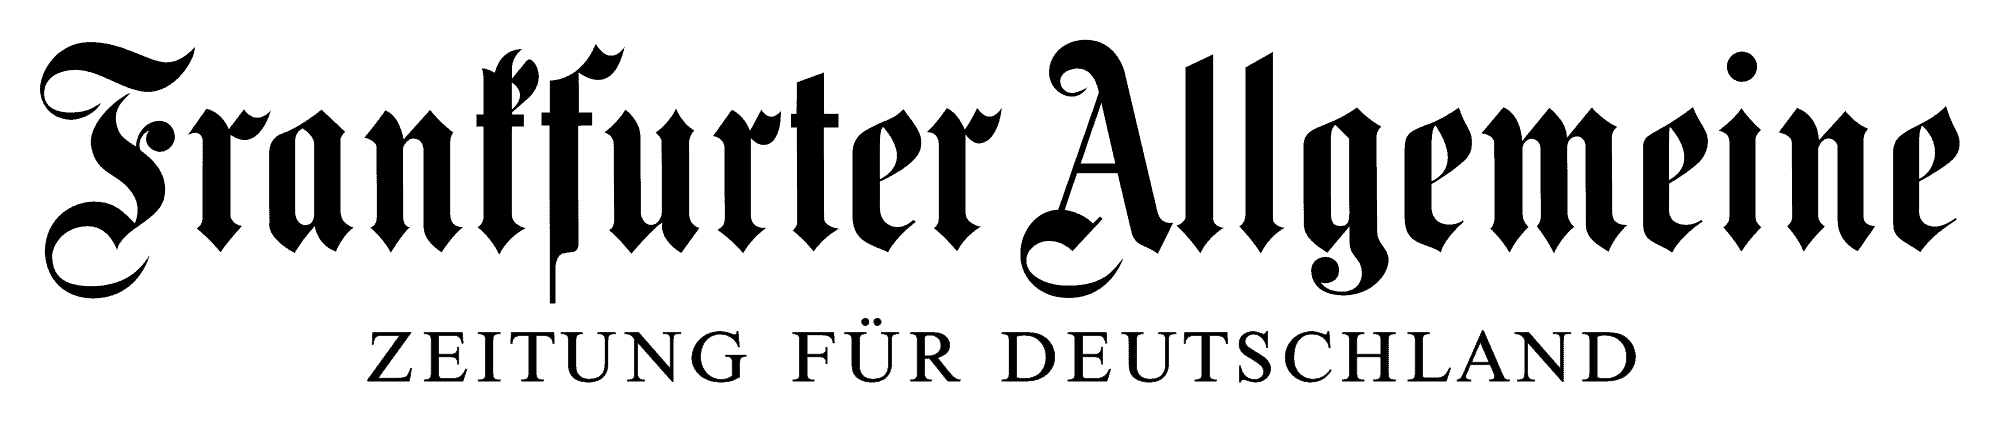 HR Special about AMERIA AG in German Newspaper FAZ